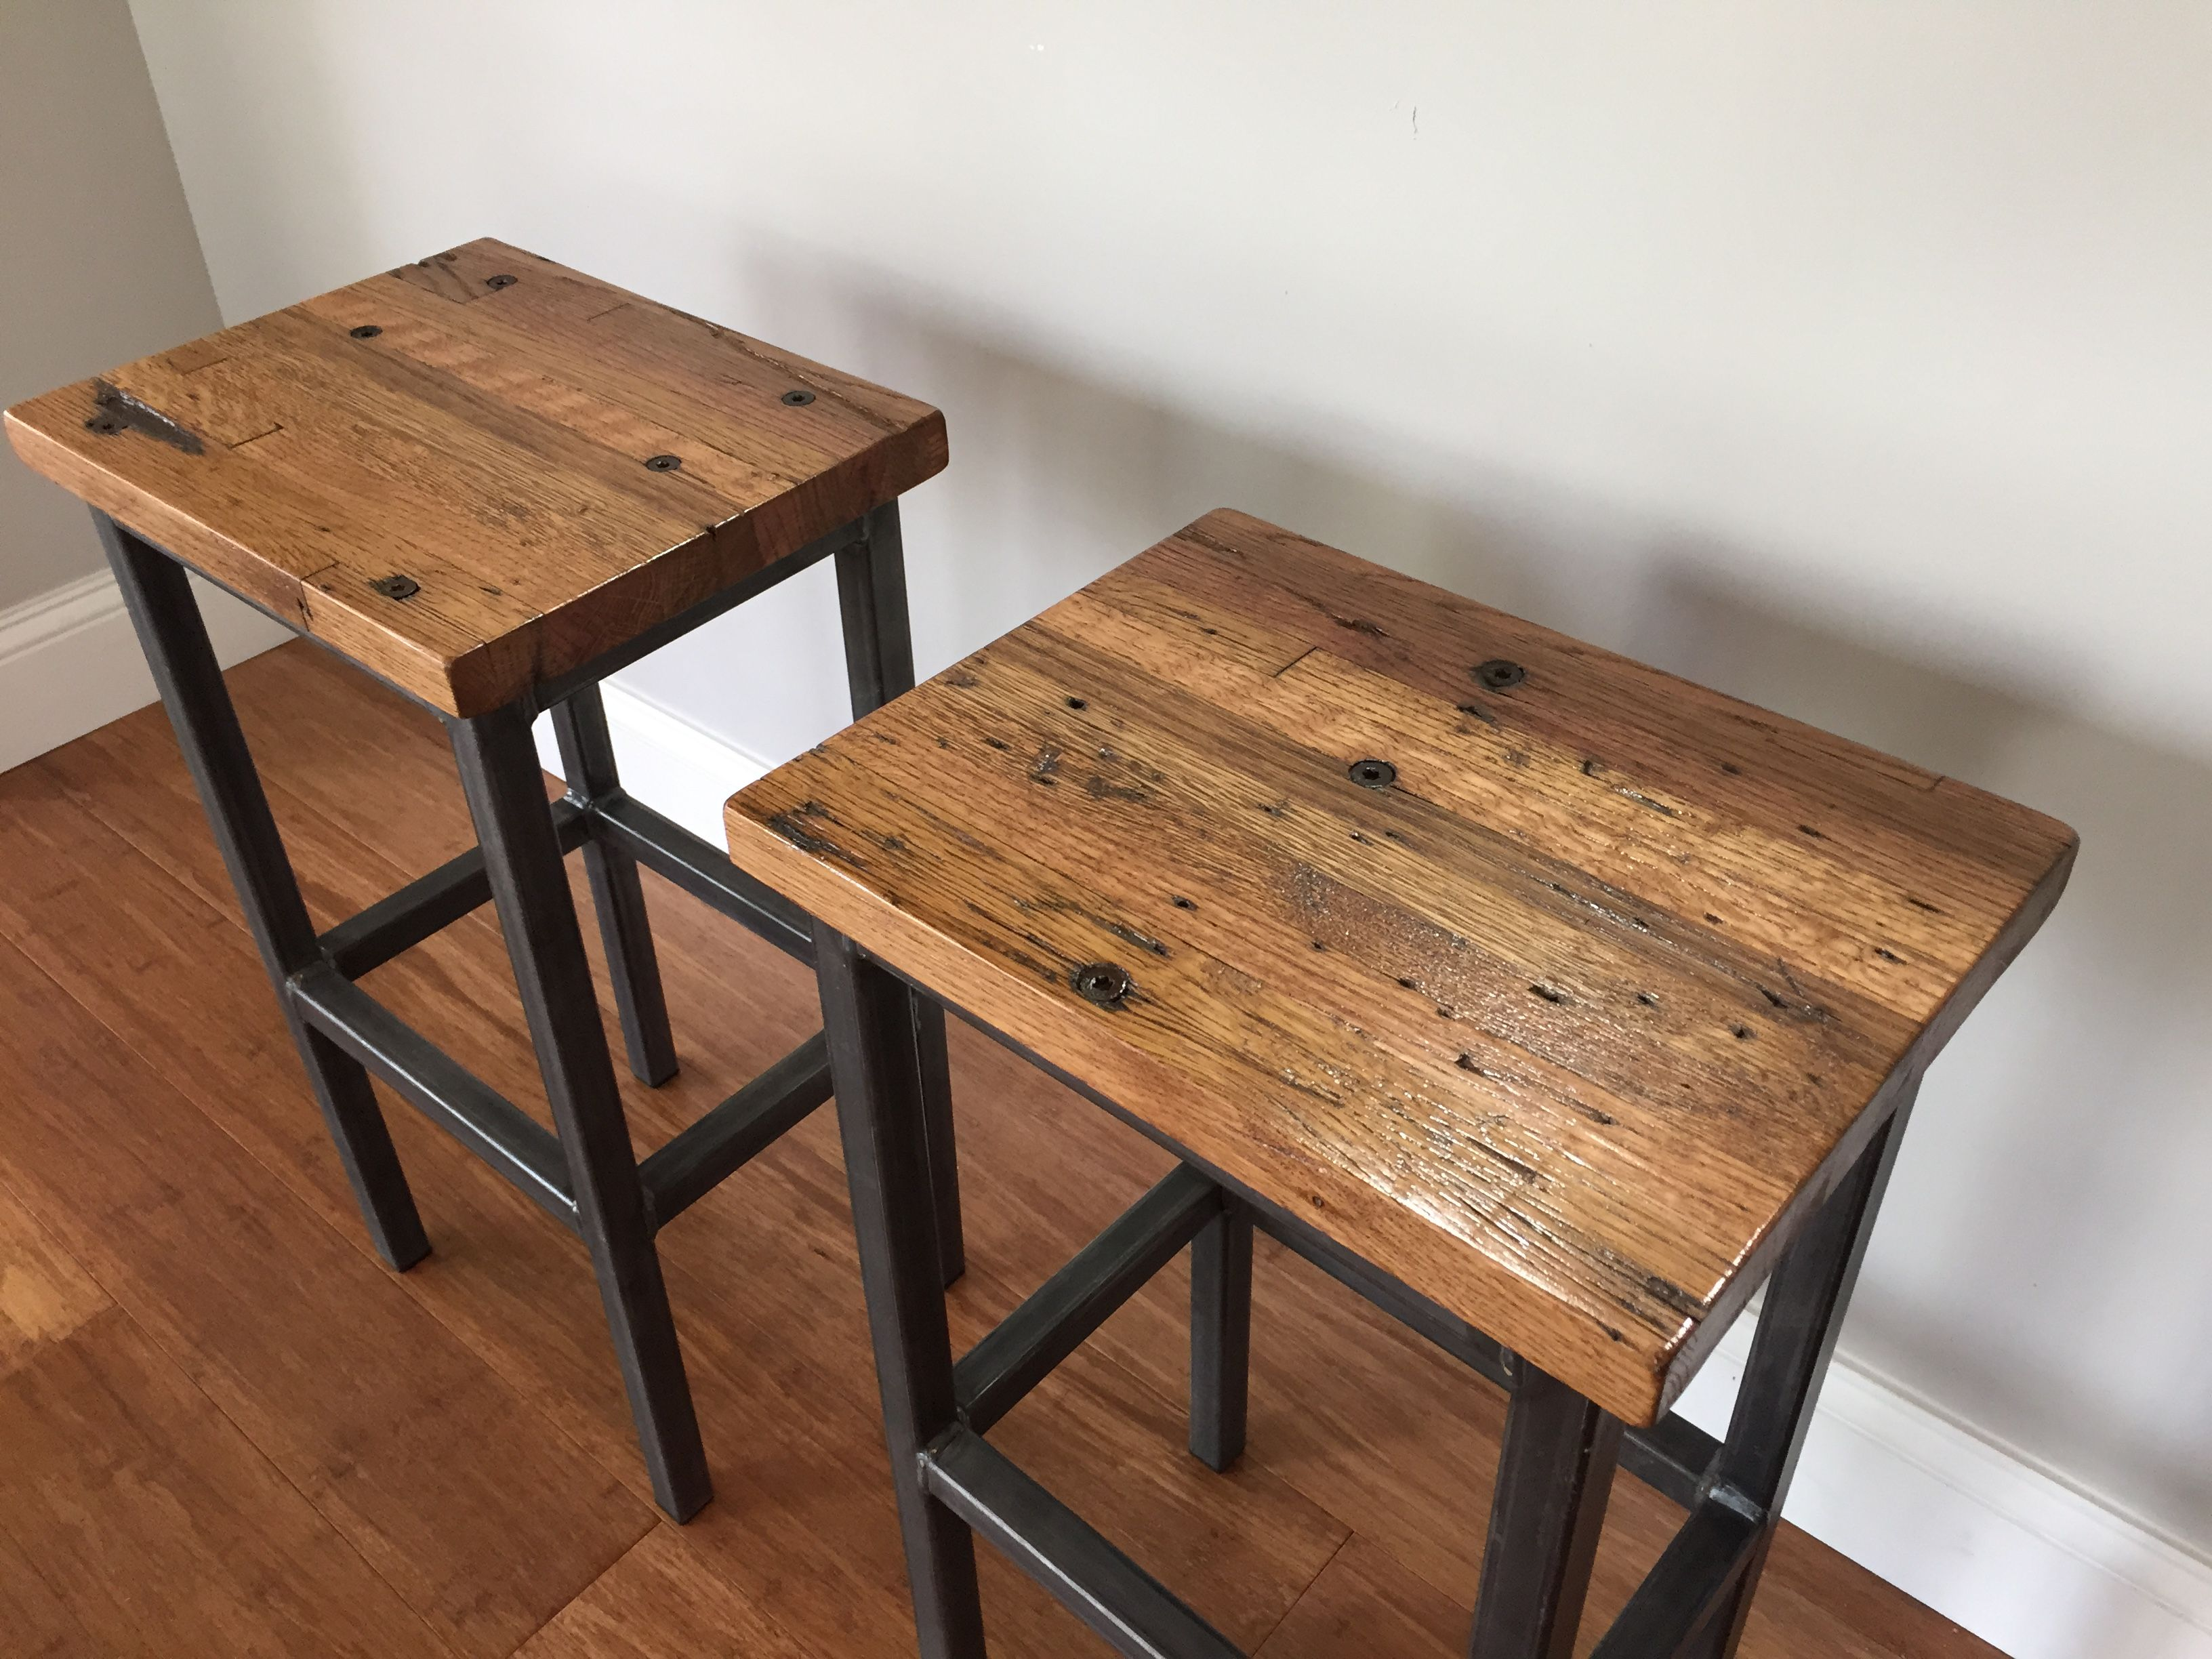 custom made reclaimed oak wood bar stools wsteel frames handmade in denver